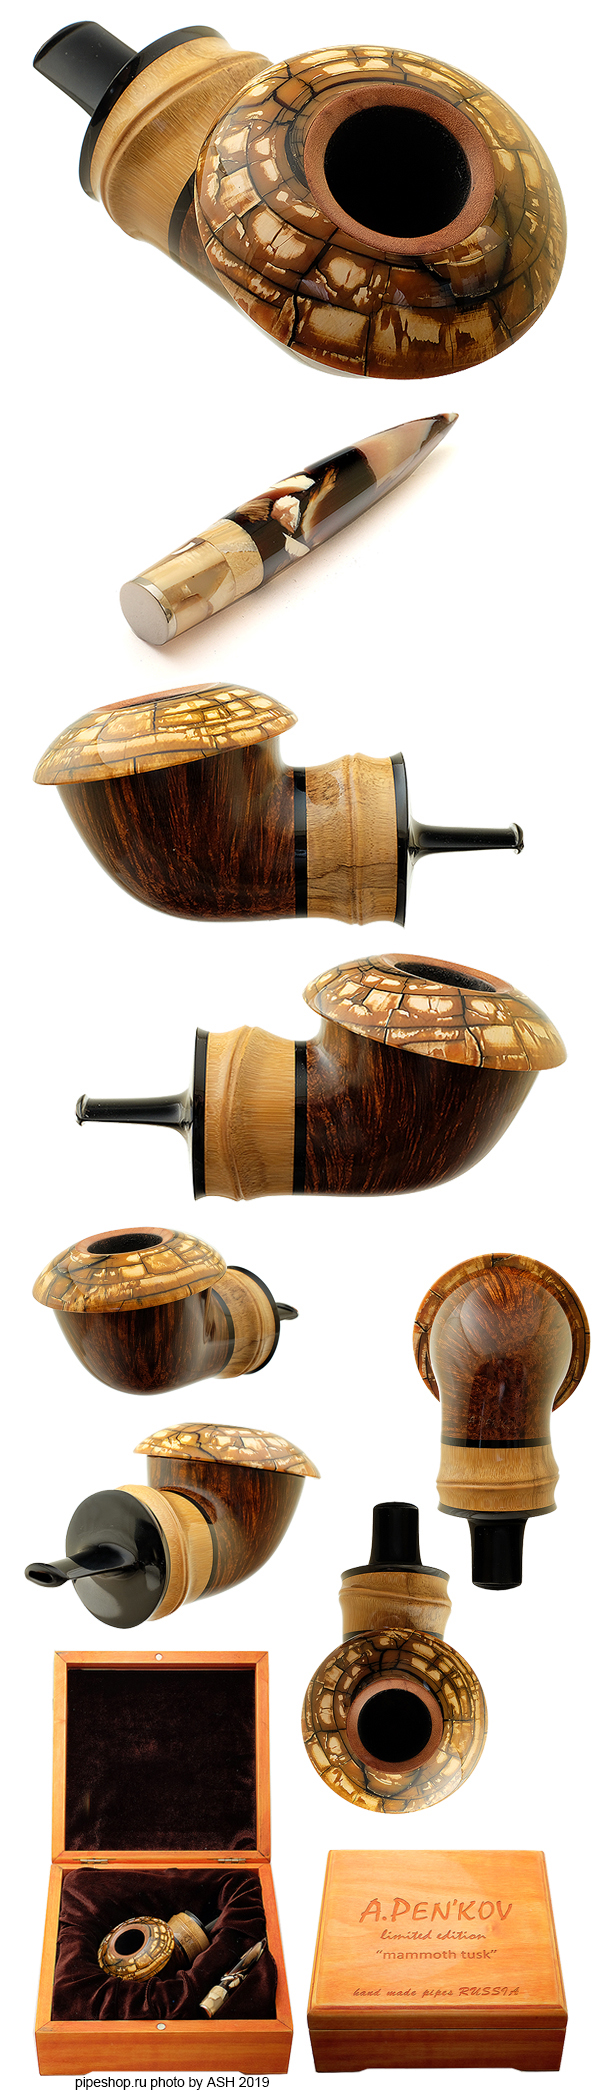 "Курительная трубка A. PEN`KOV LIMITED EDITION ""MAMMOTH TUSK"" BUDDHA BAMBOO RC CALABASH WITH TAMPER ESTATE NEW"